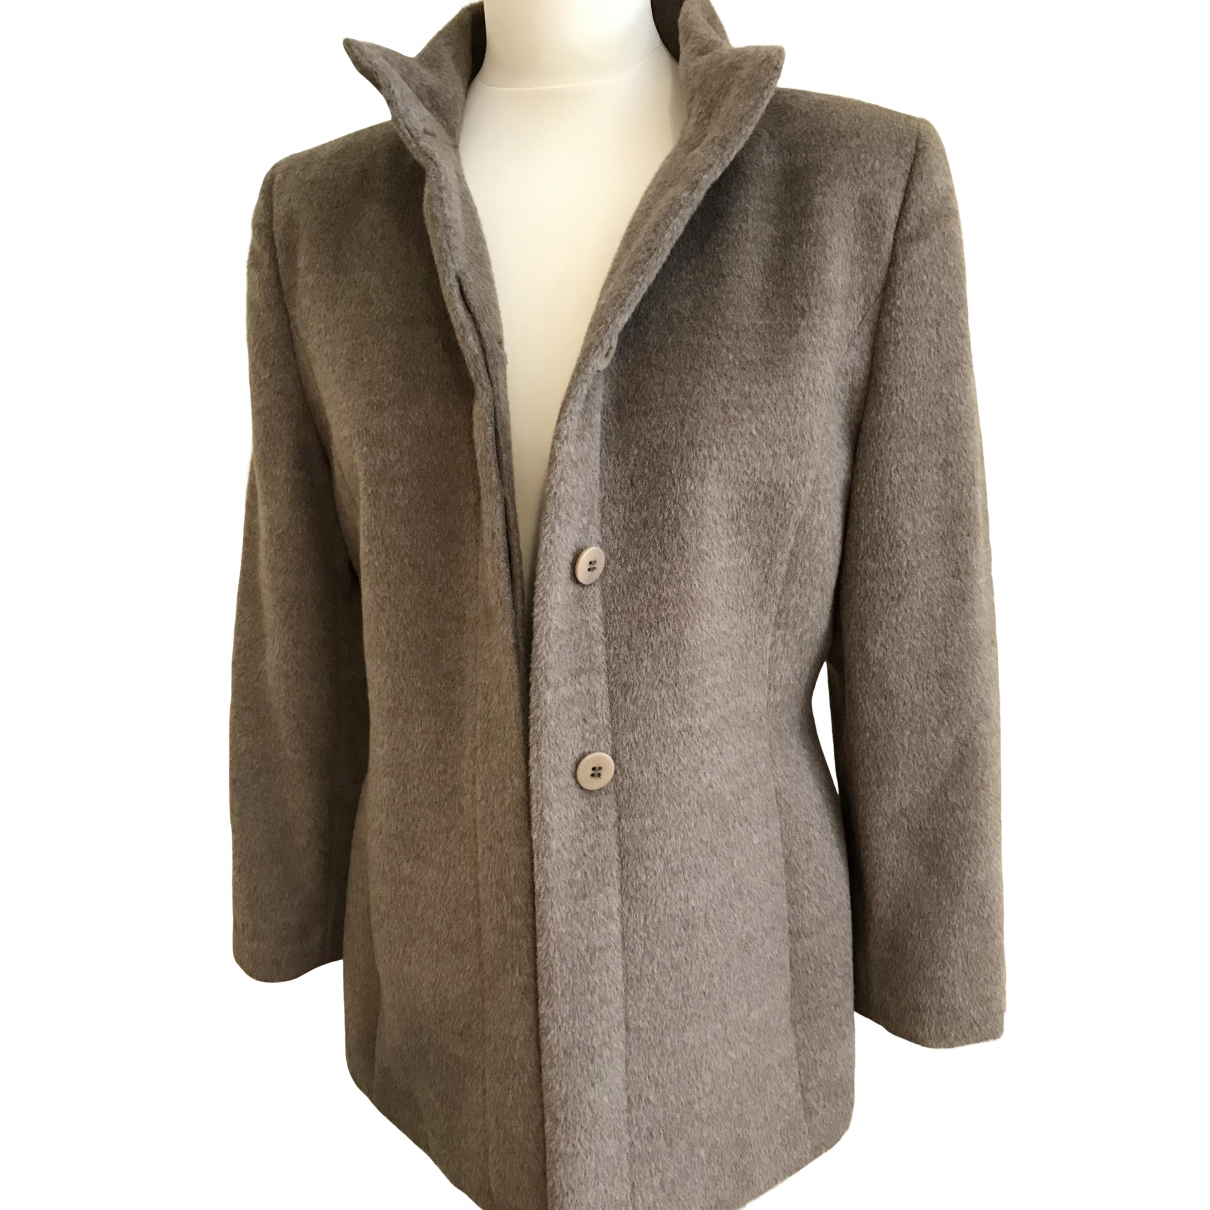 Adolfo Dominguez \N Camel Wool jacket for Women 44 FR